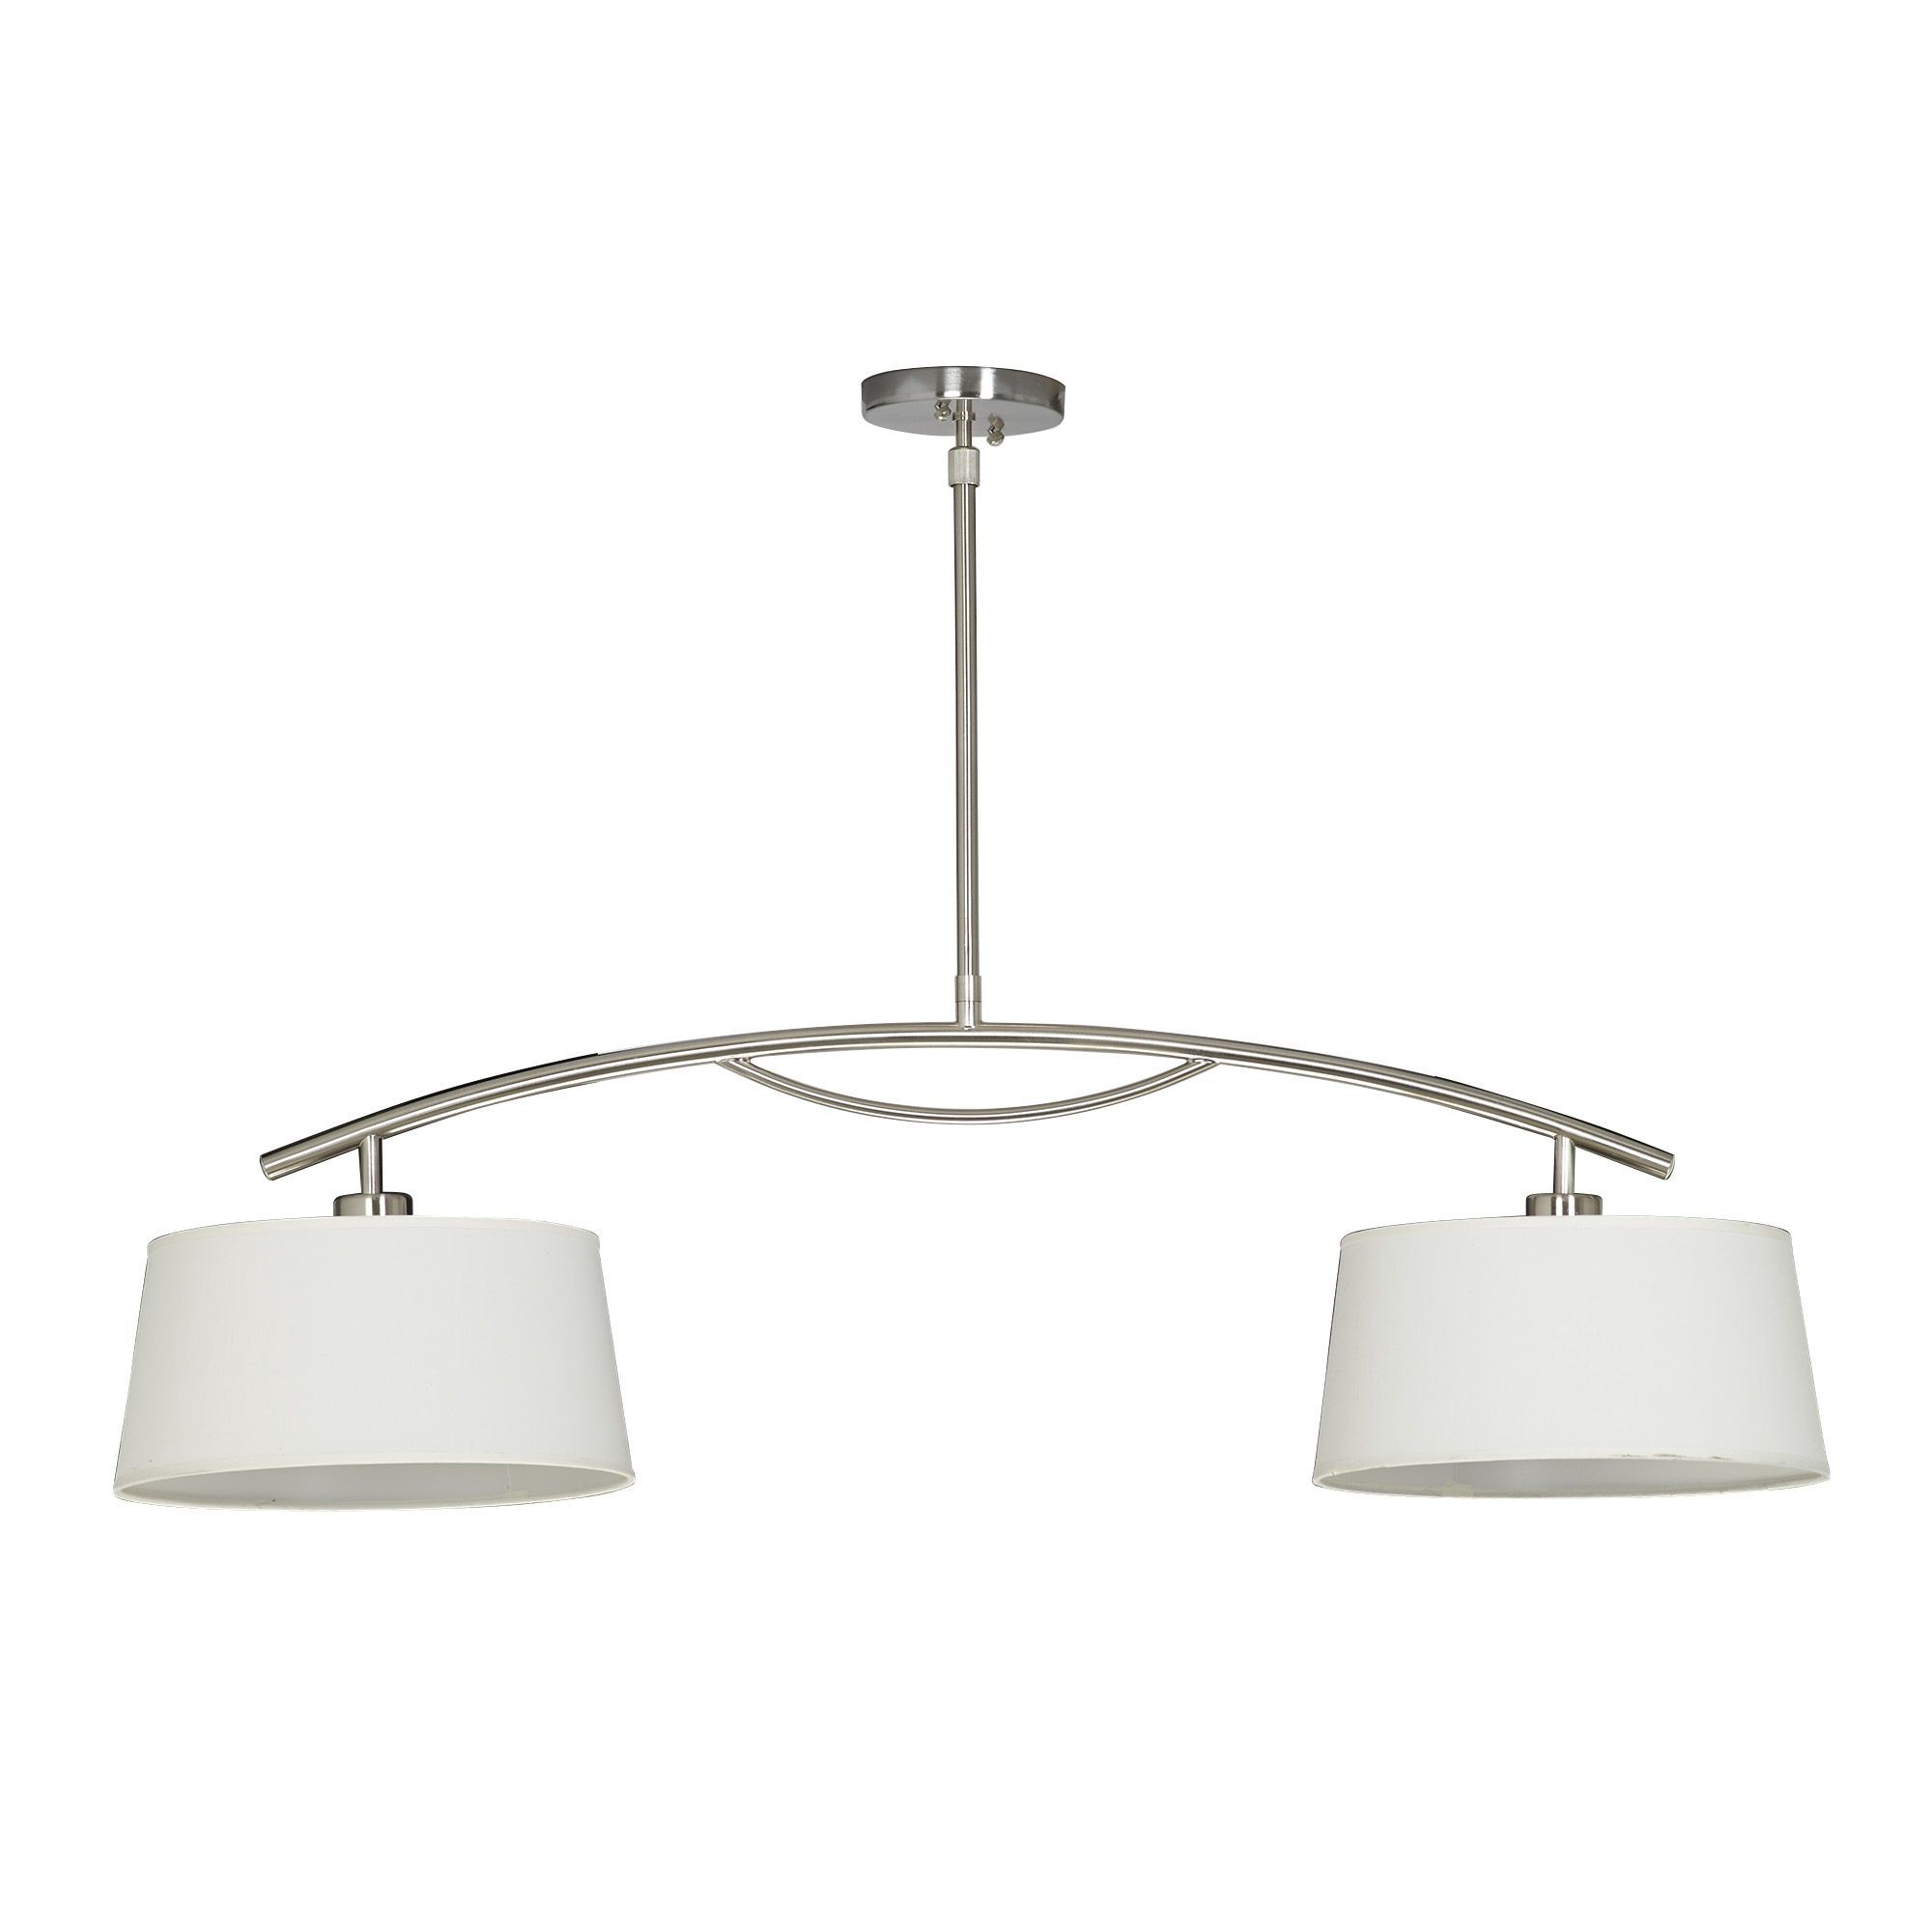 Suspension 2 lumi res l102cm new select les for Luminaire suspension salon